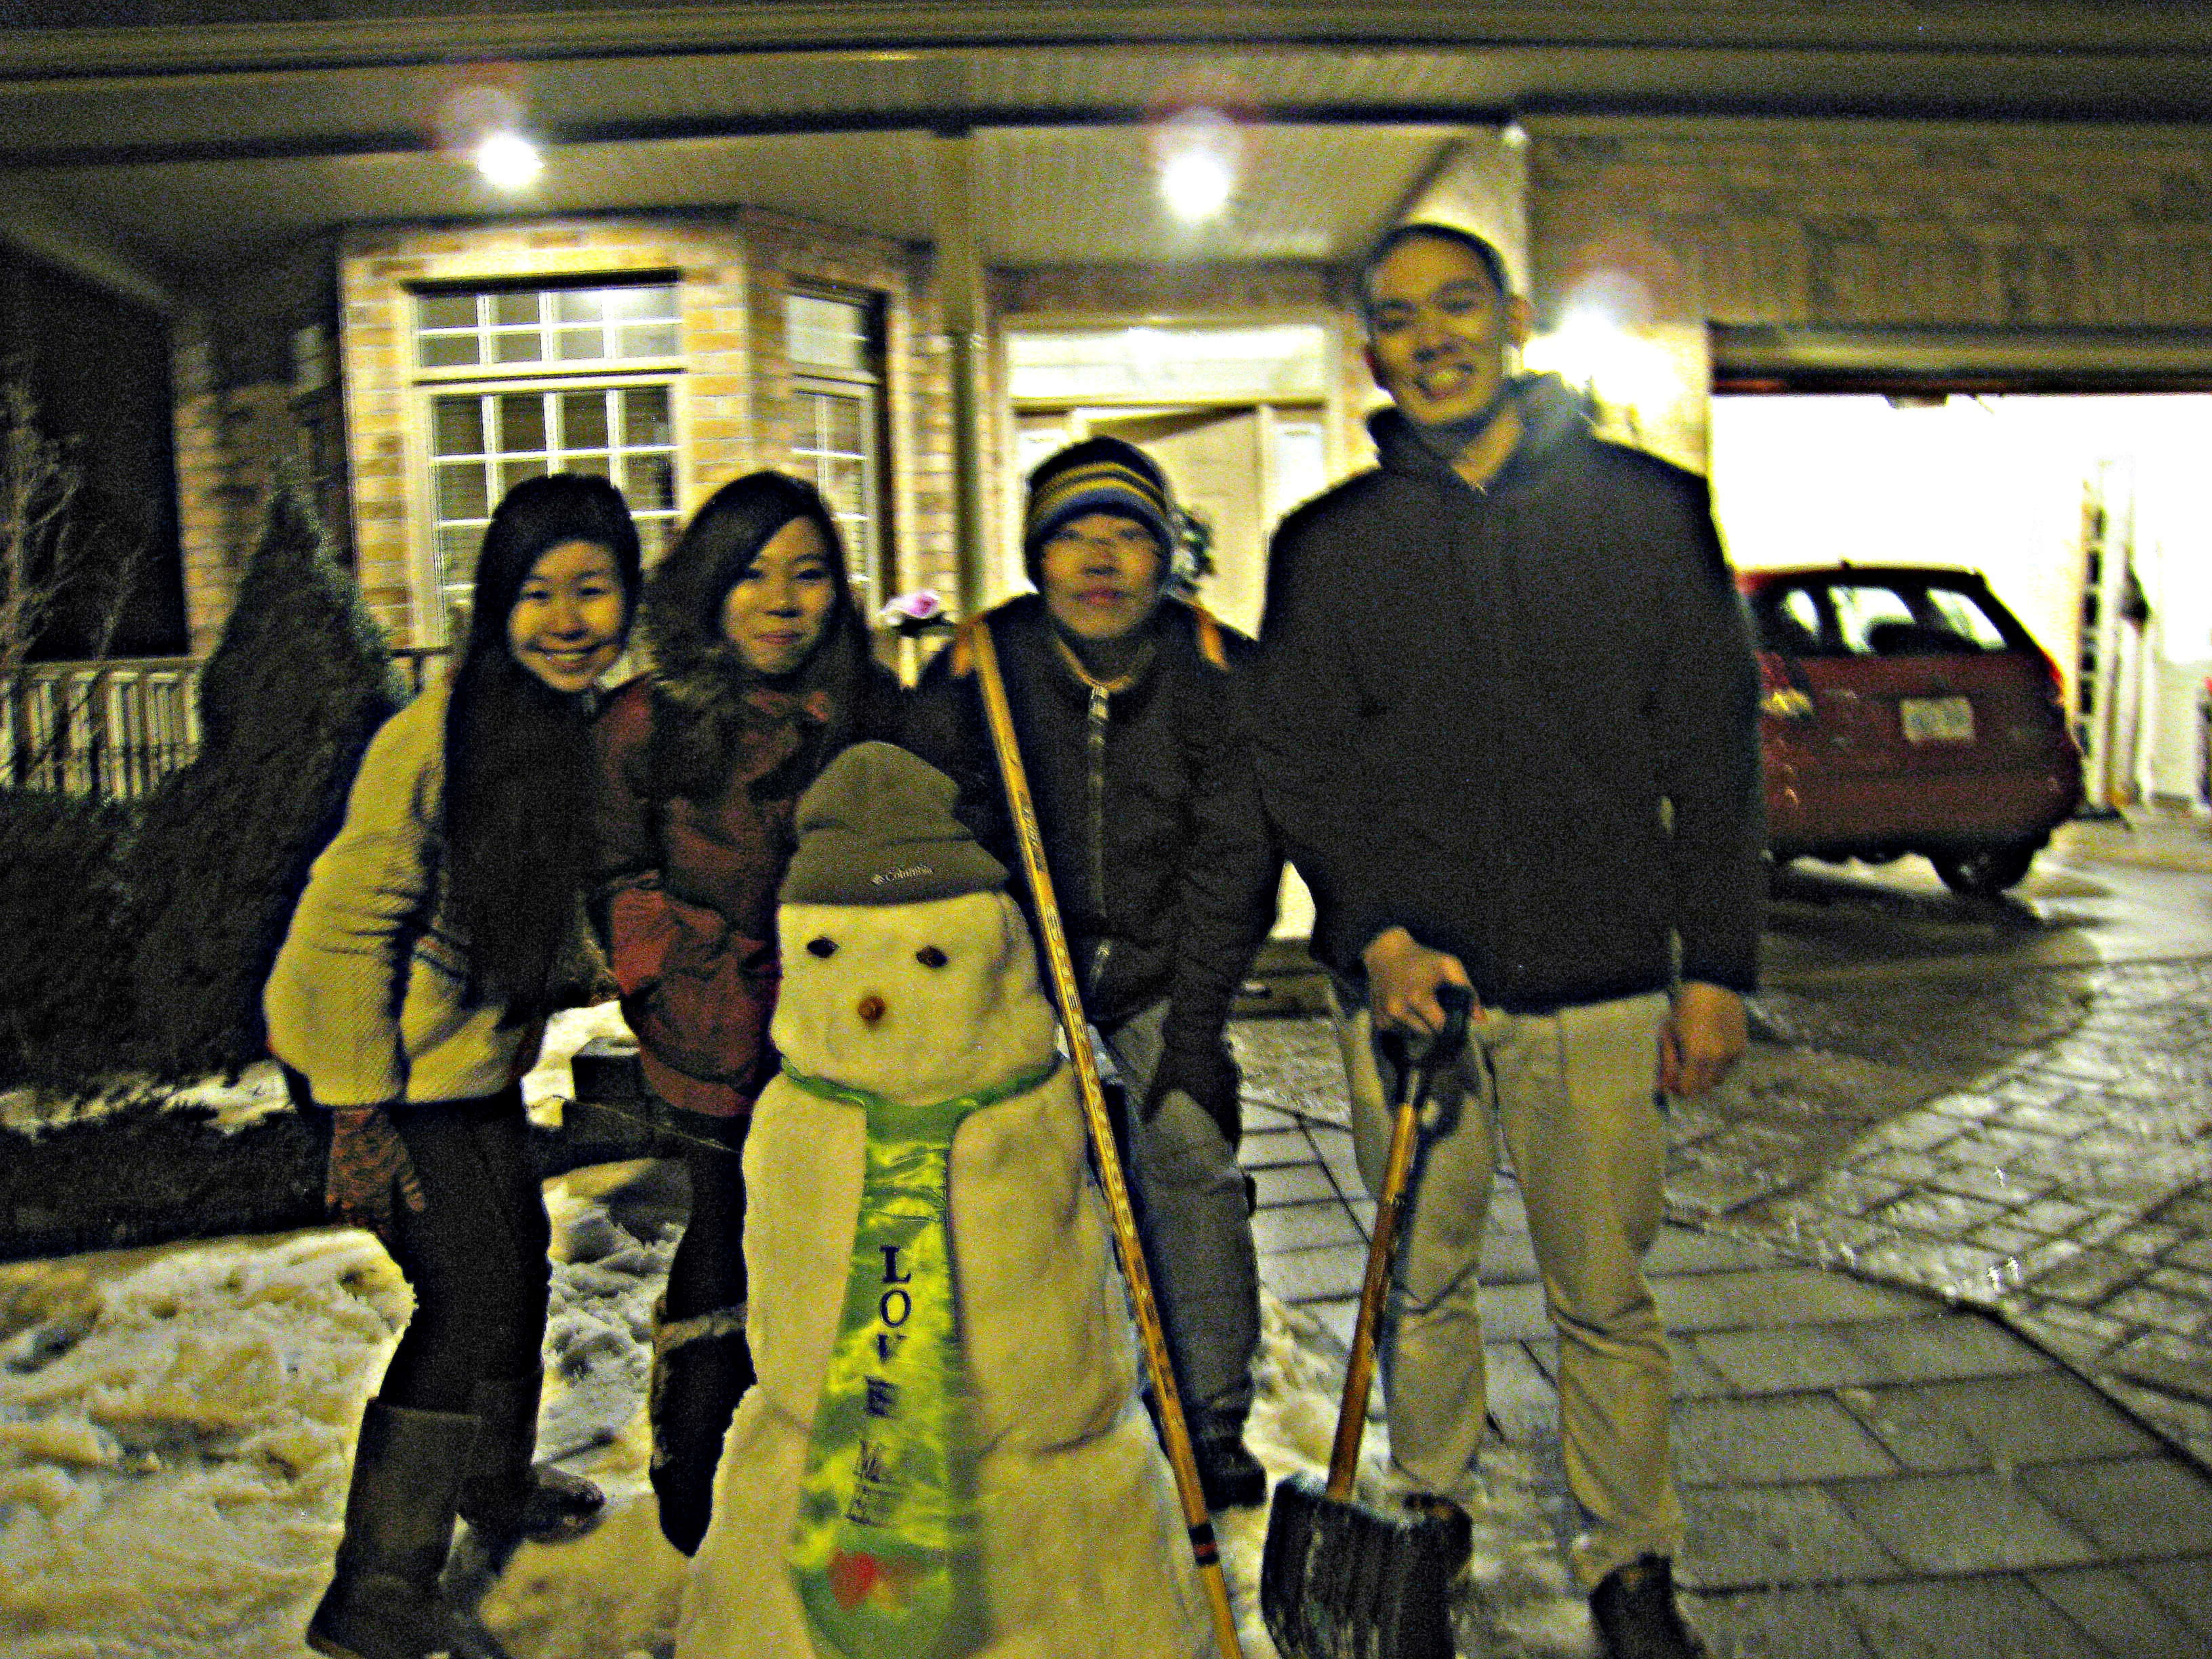 First Snowman built by Winter 2013 NTU Students